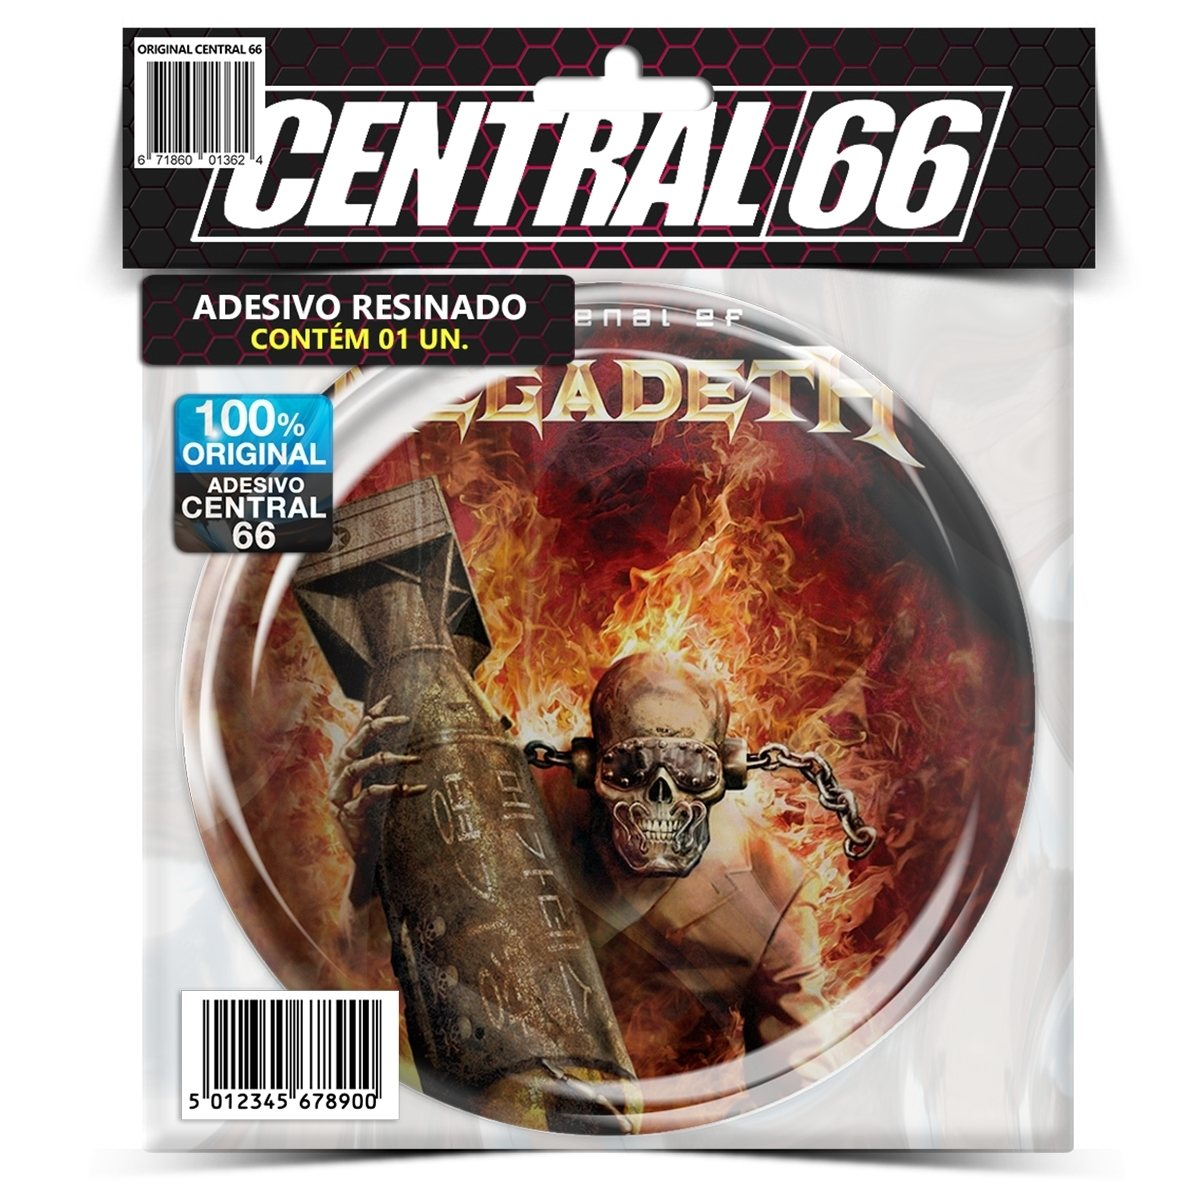 Adesivo Redondo Arsenal of Megadeth – Central 66